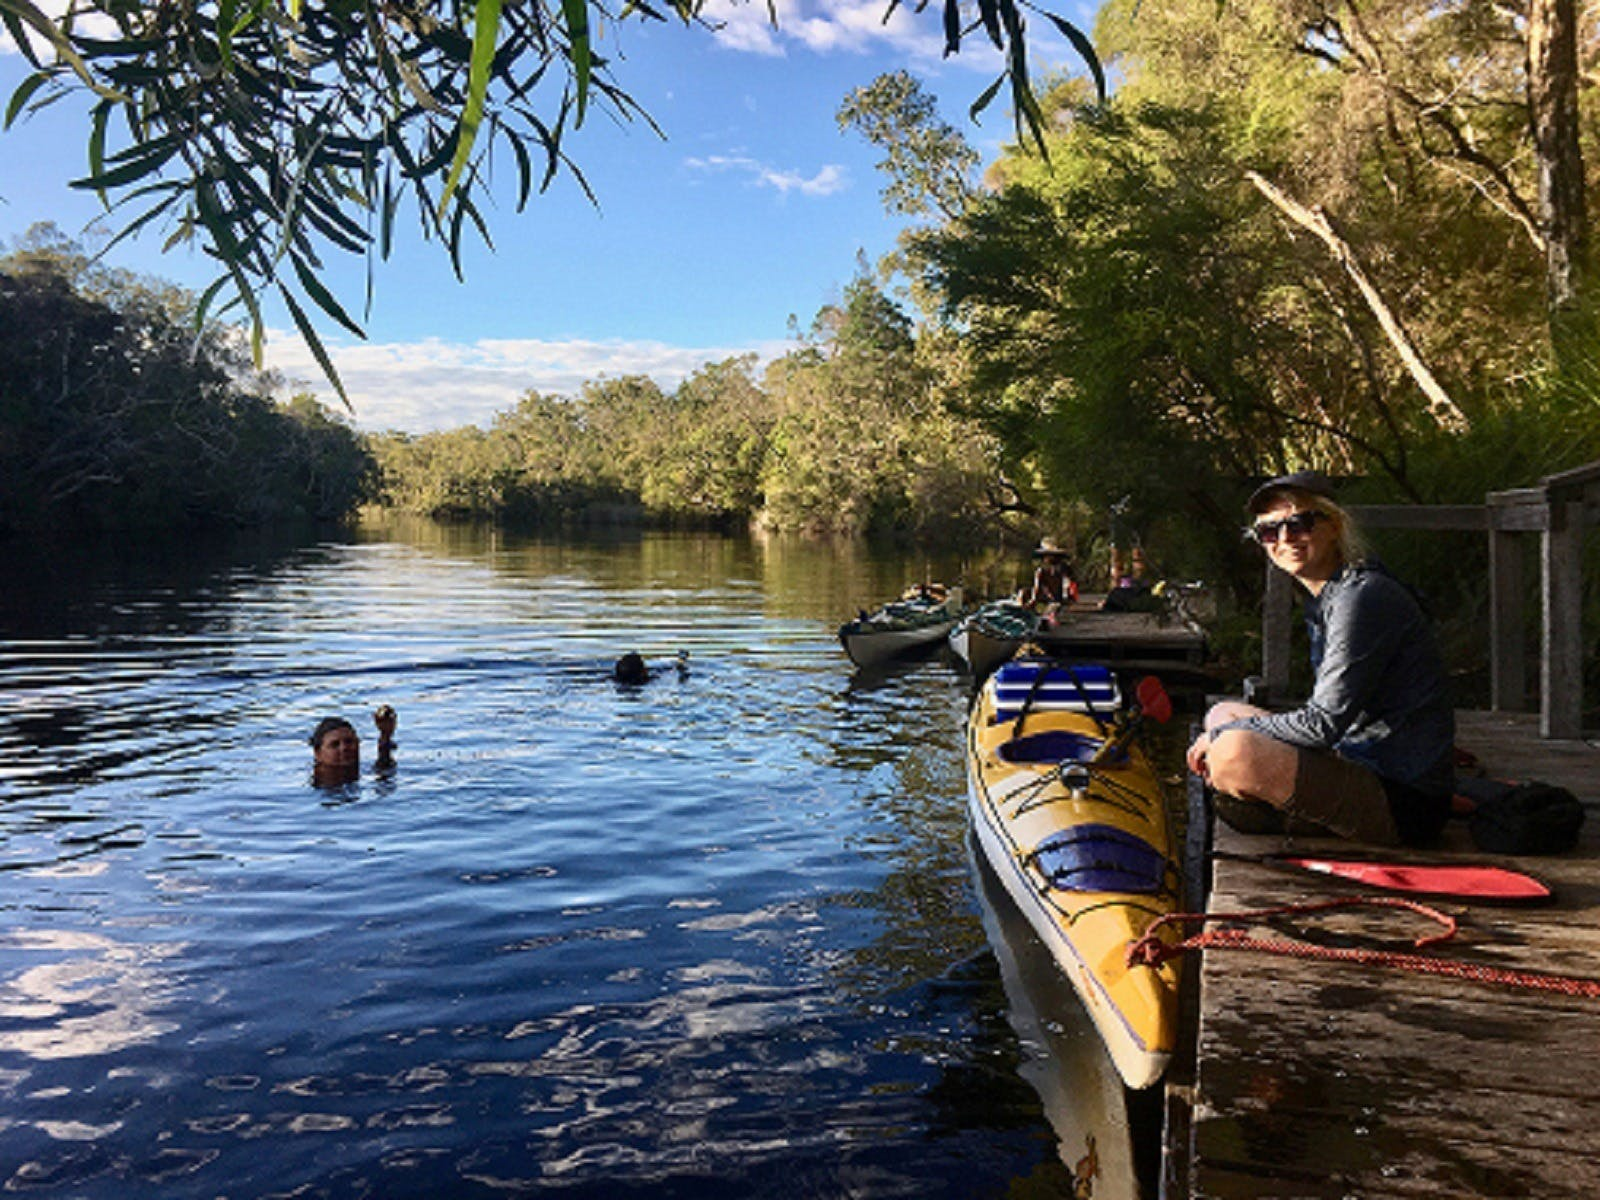 50% off up to $100 on a 2 Day Kayak Adventure for 2